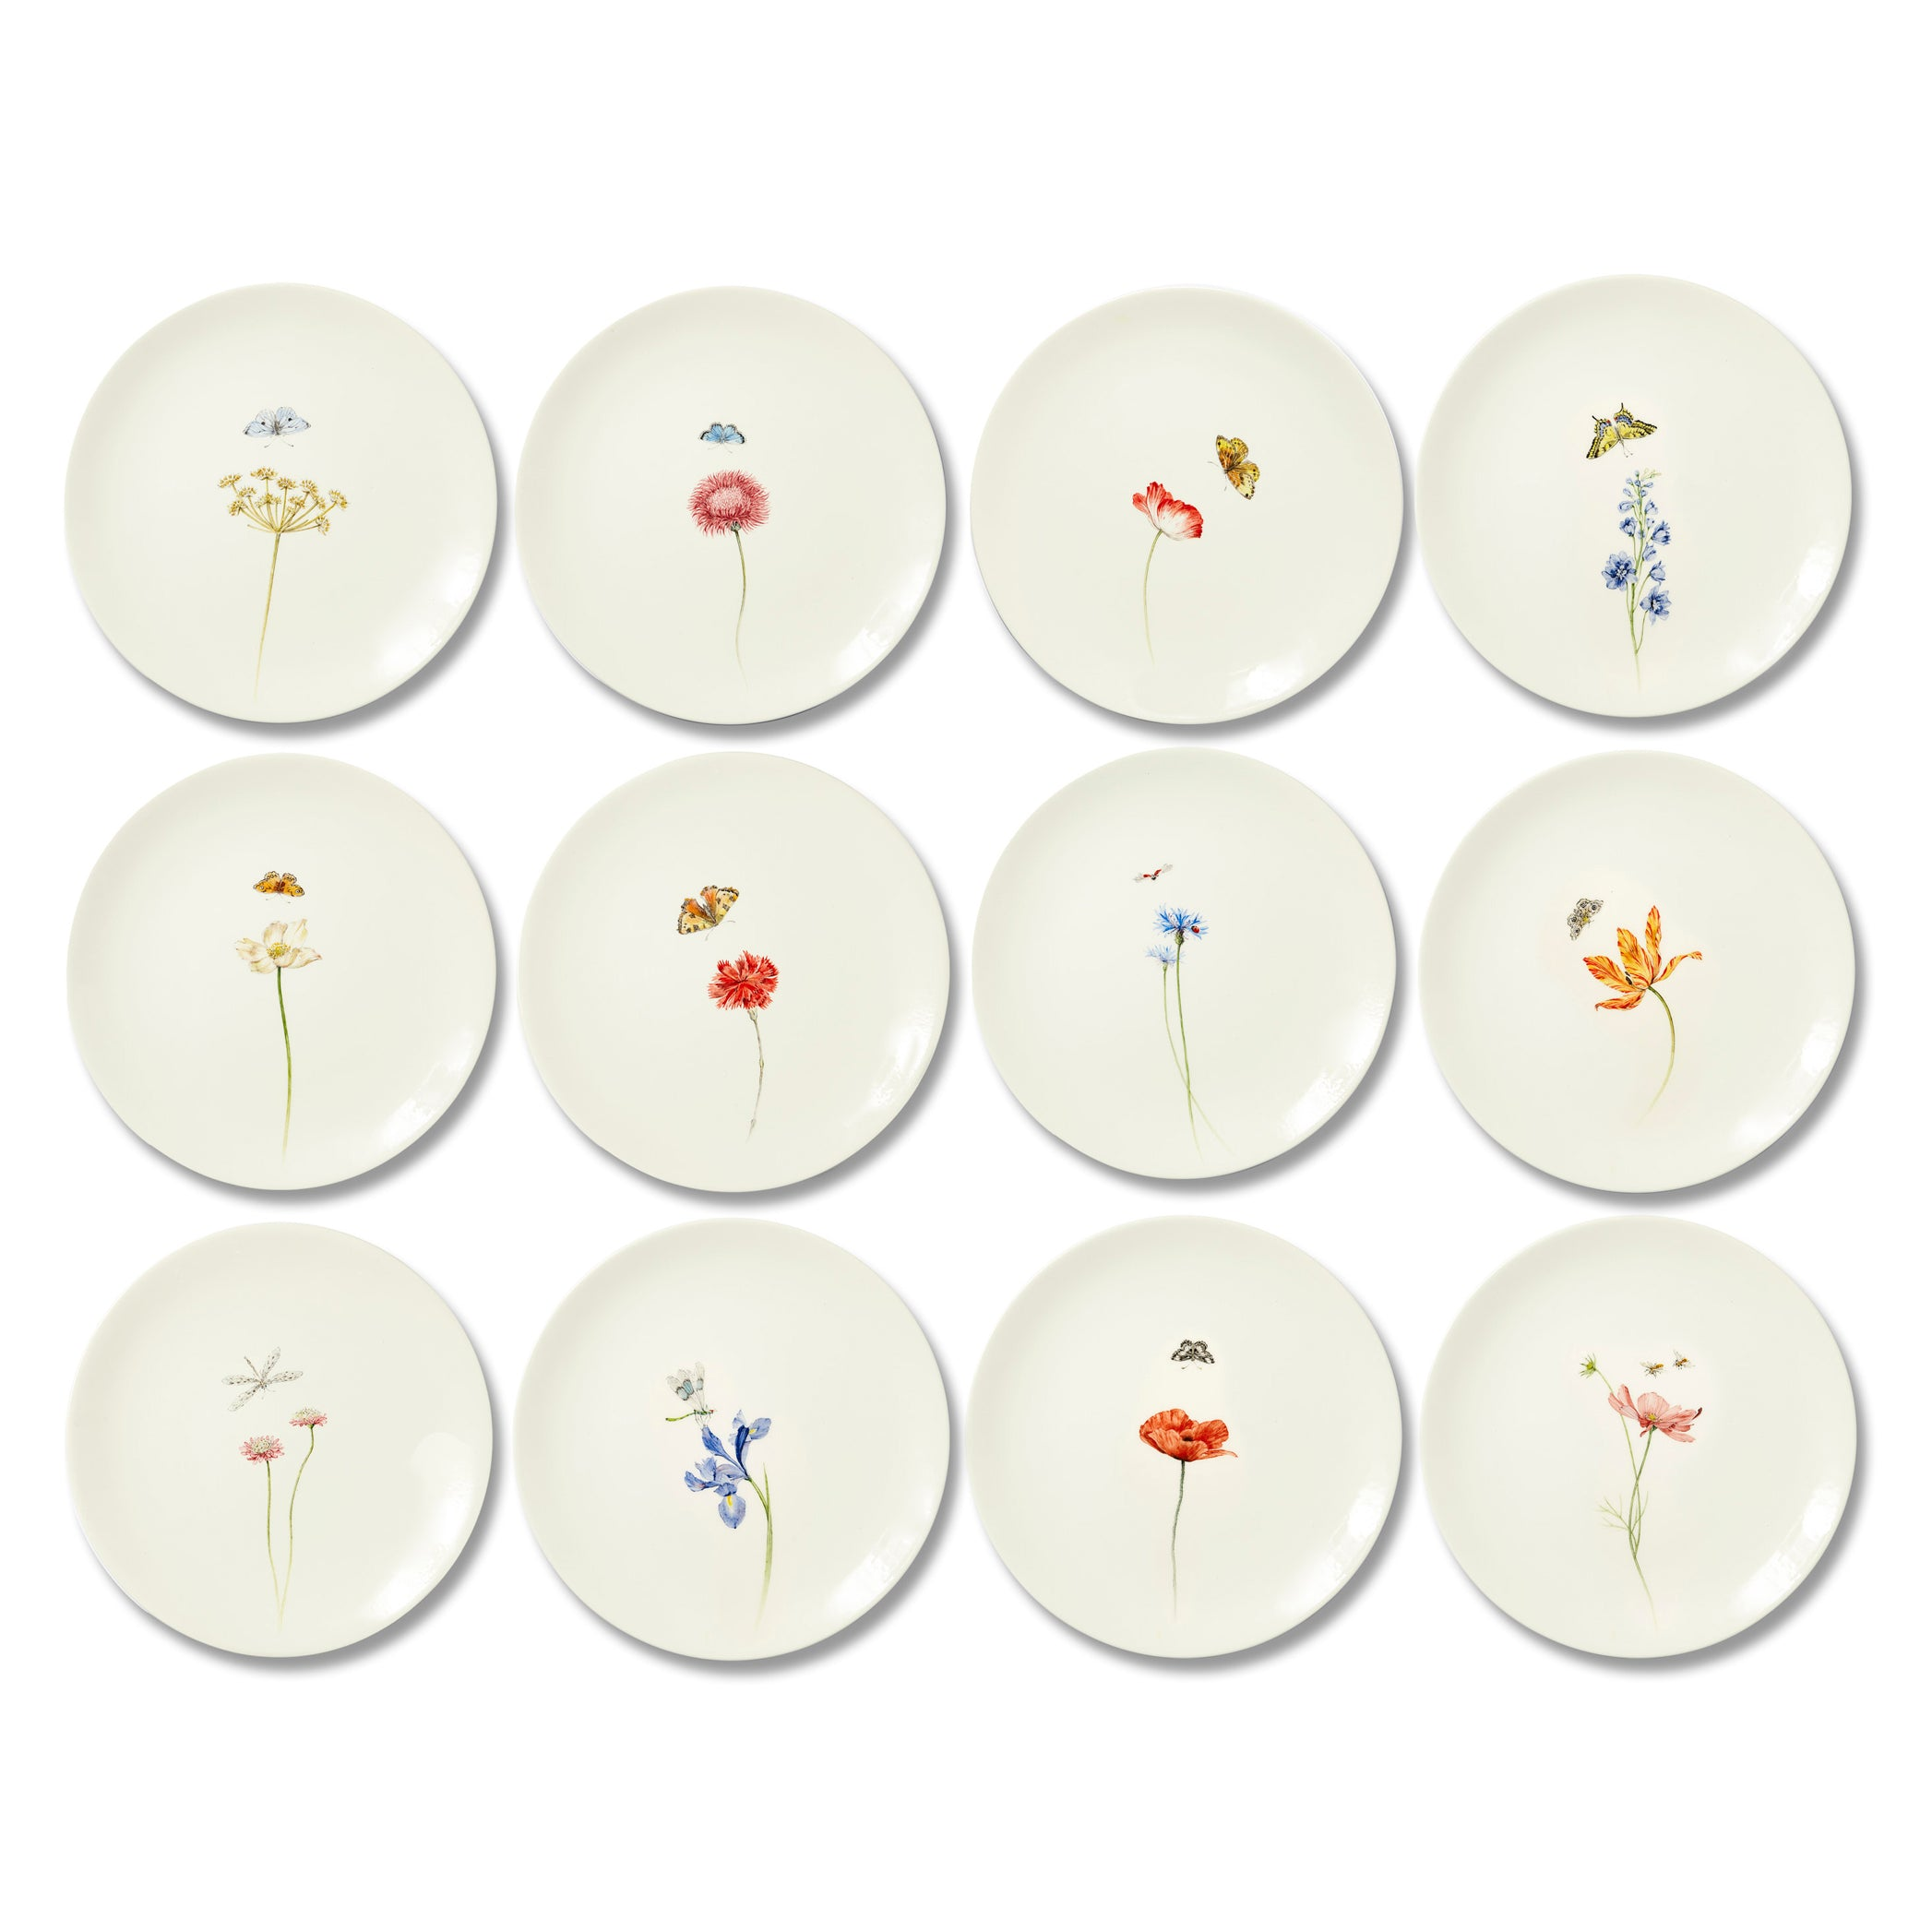 Bloom Tulipae Variae Dinner Plate, 25cm